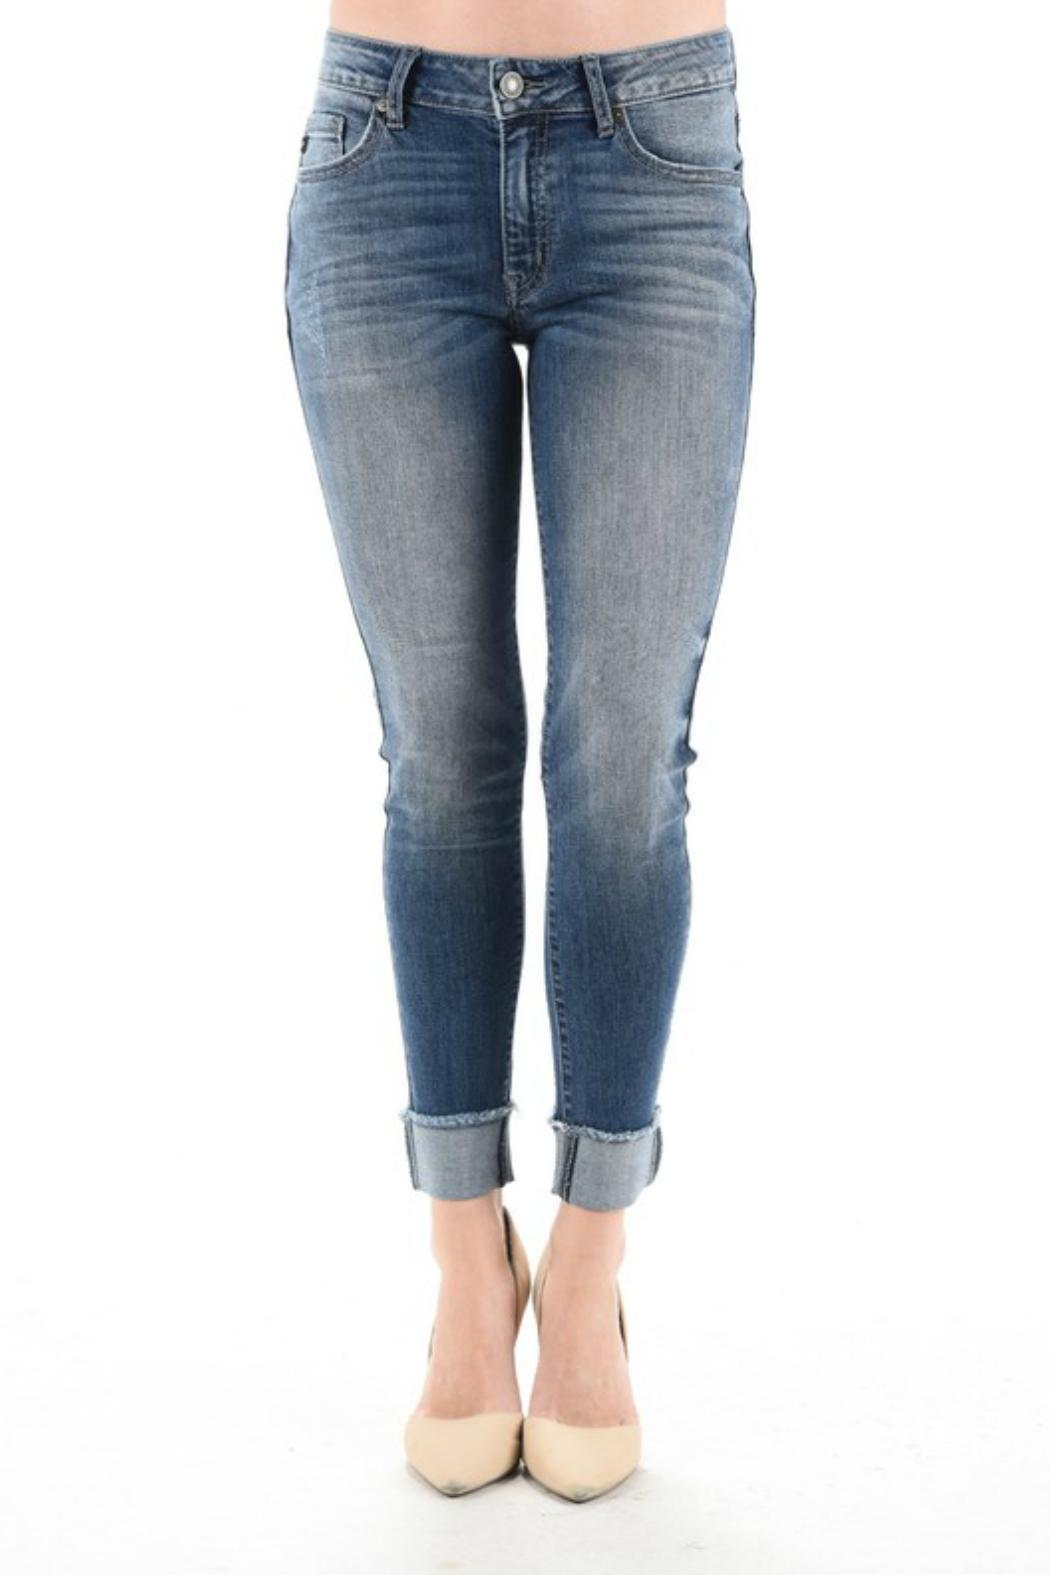 KanCan Cuffed Cropped Jeans - Main Image